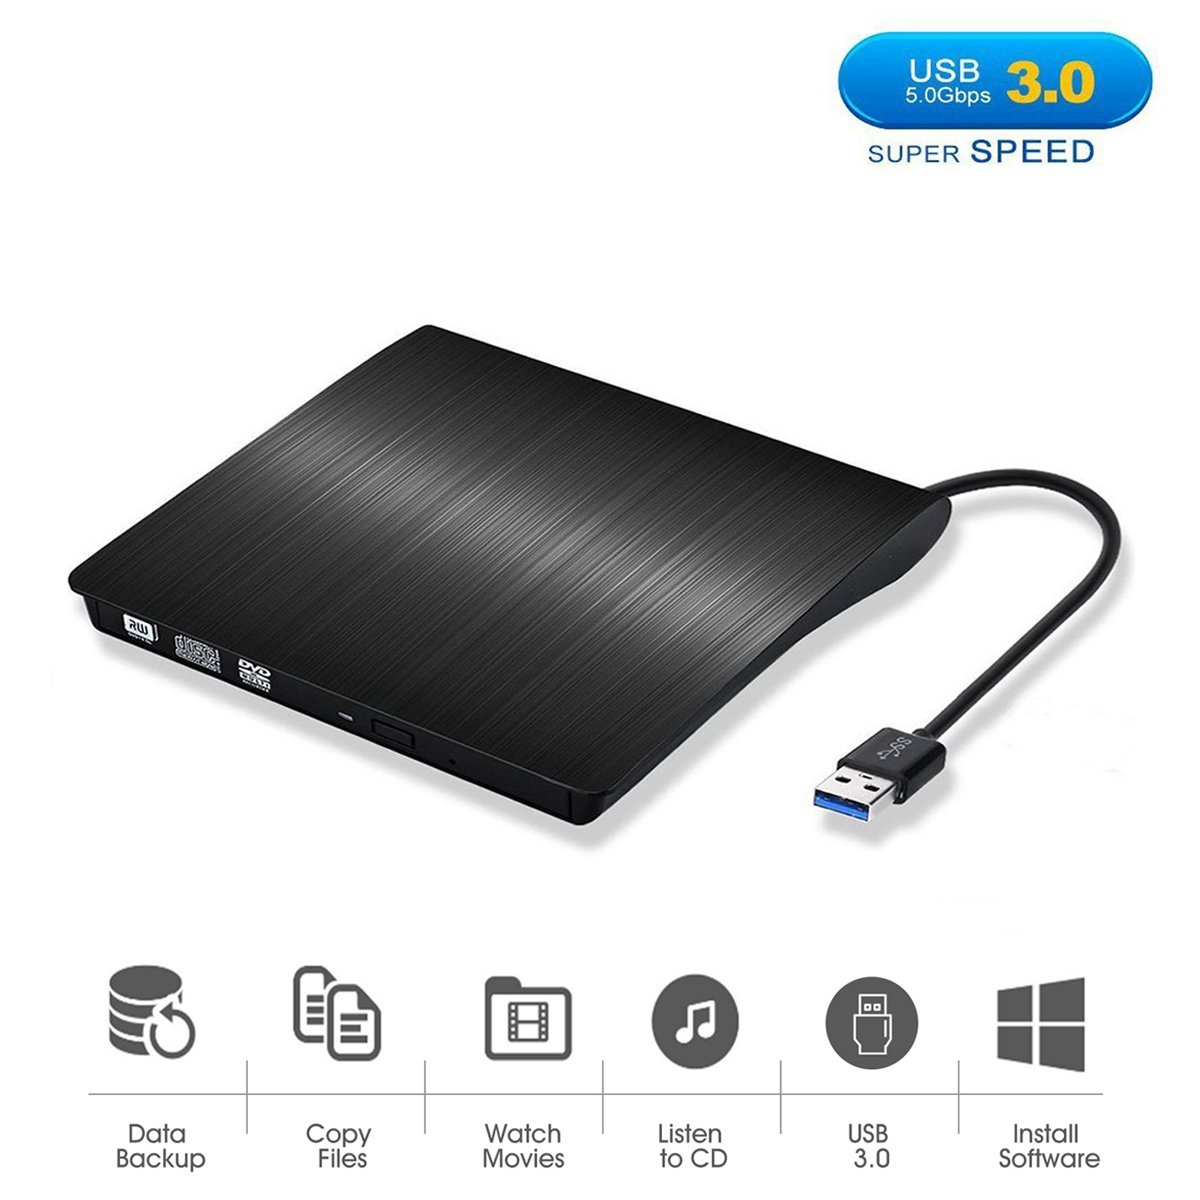 USB 3.0 External DVD CD Drive, Tagital Slim Portable External DVD/CD RW Burner Drive for l aptop, Notebook, Desktop, Mac Macbook Pro, Macbook Air and More